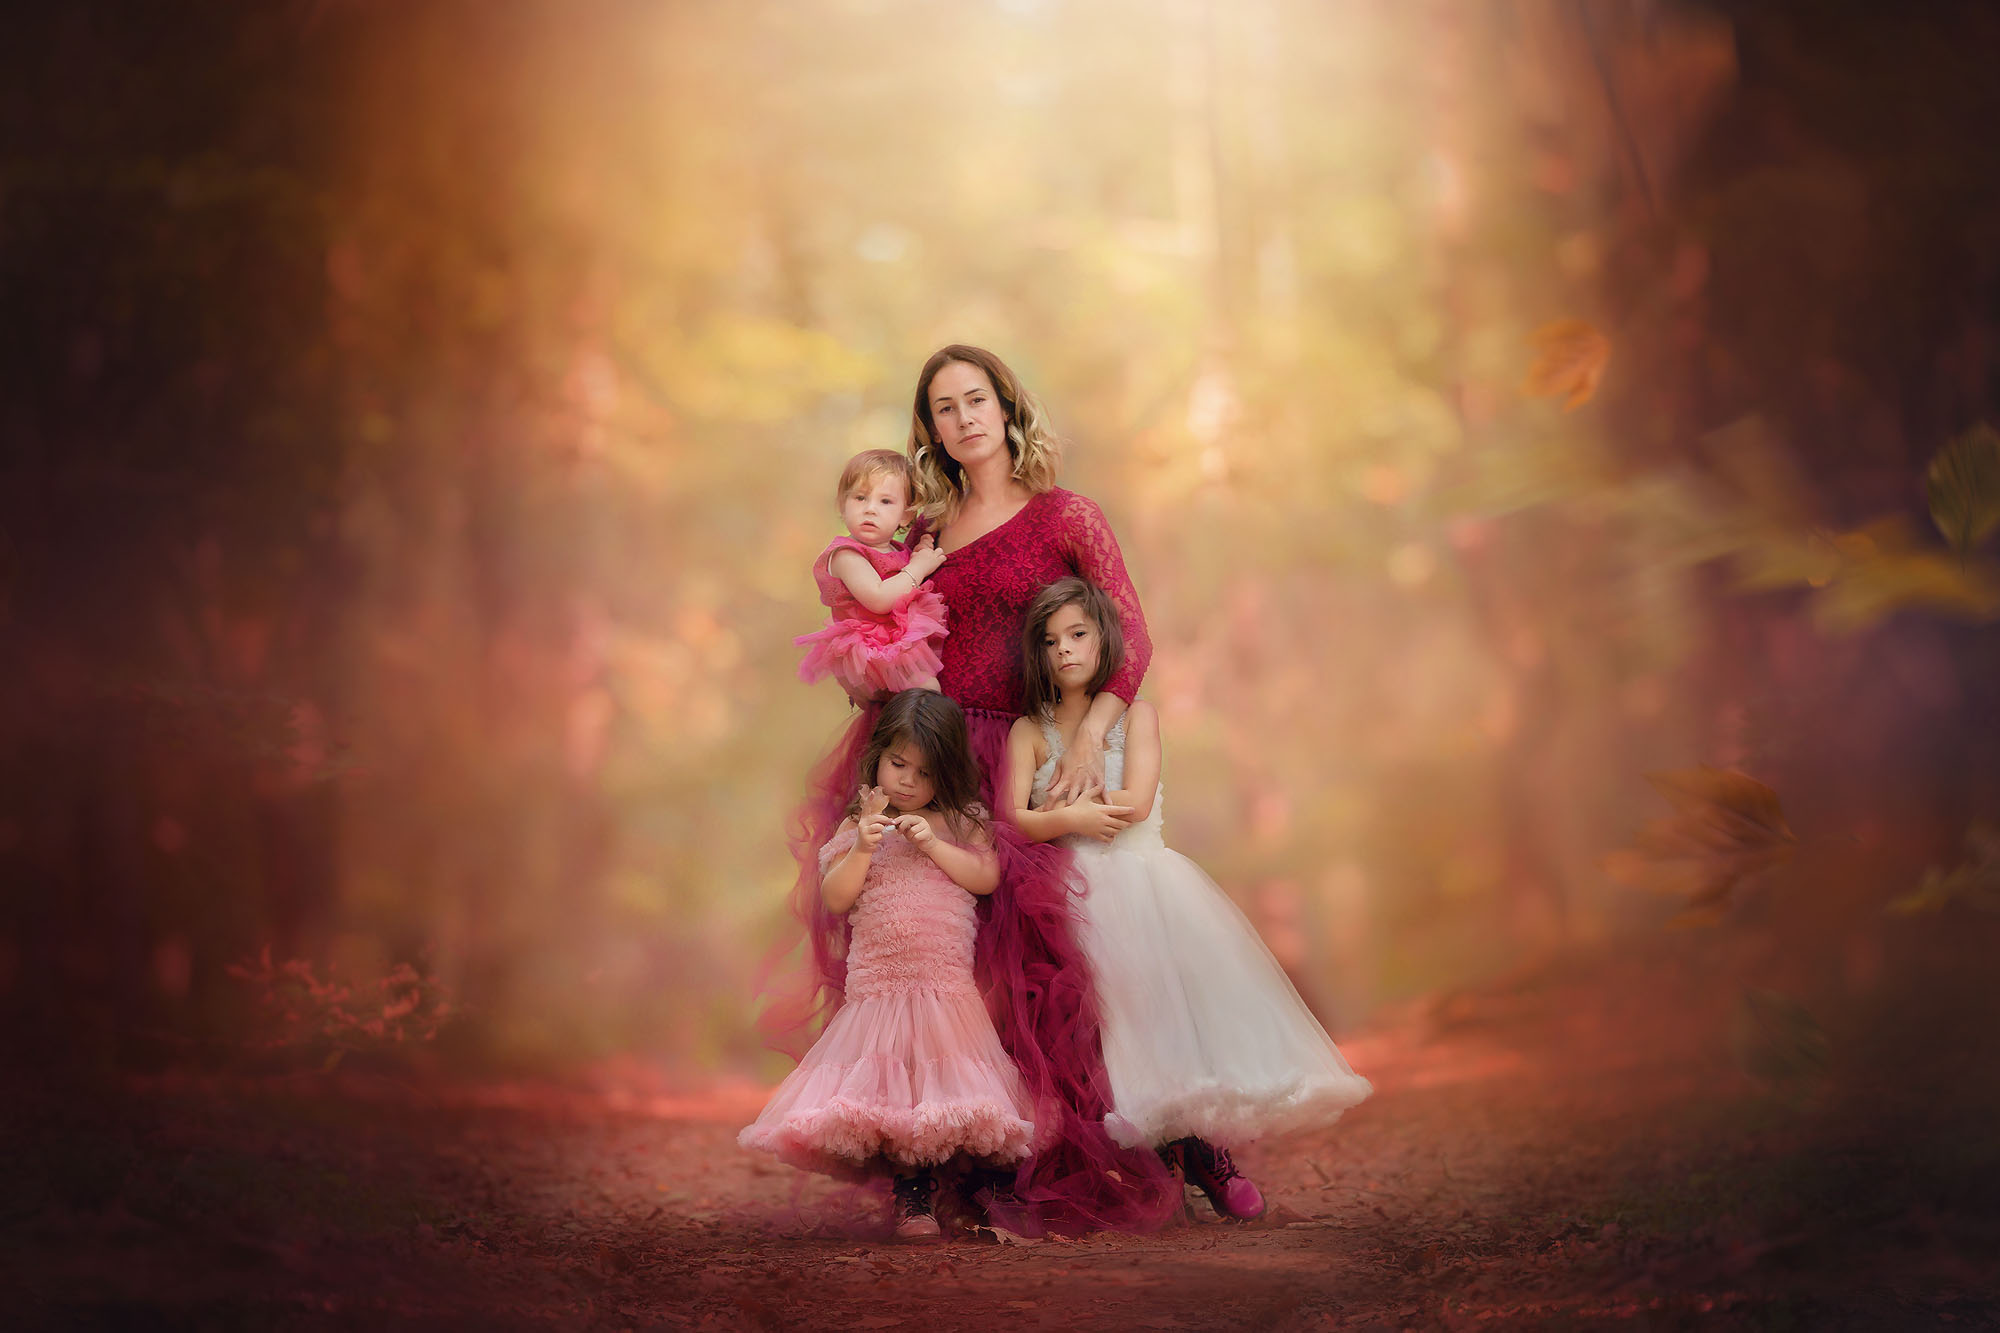 Canon 5d colorful fine art fall image of a mother and her three daughters standing in beautiful dresses in an autumn entchanted forest by Willie Kers